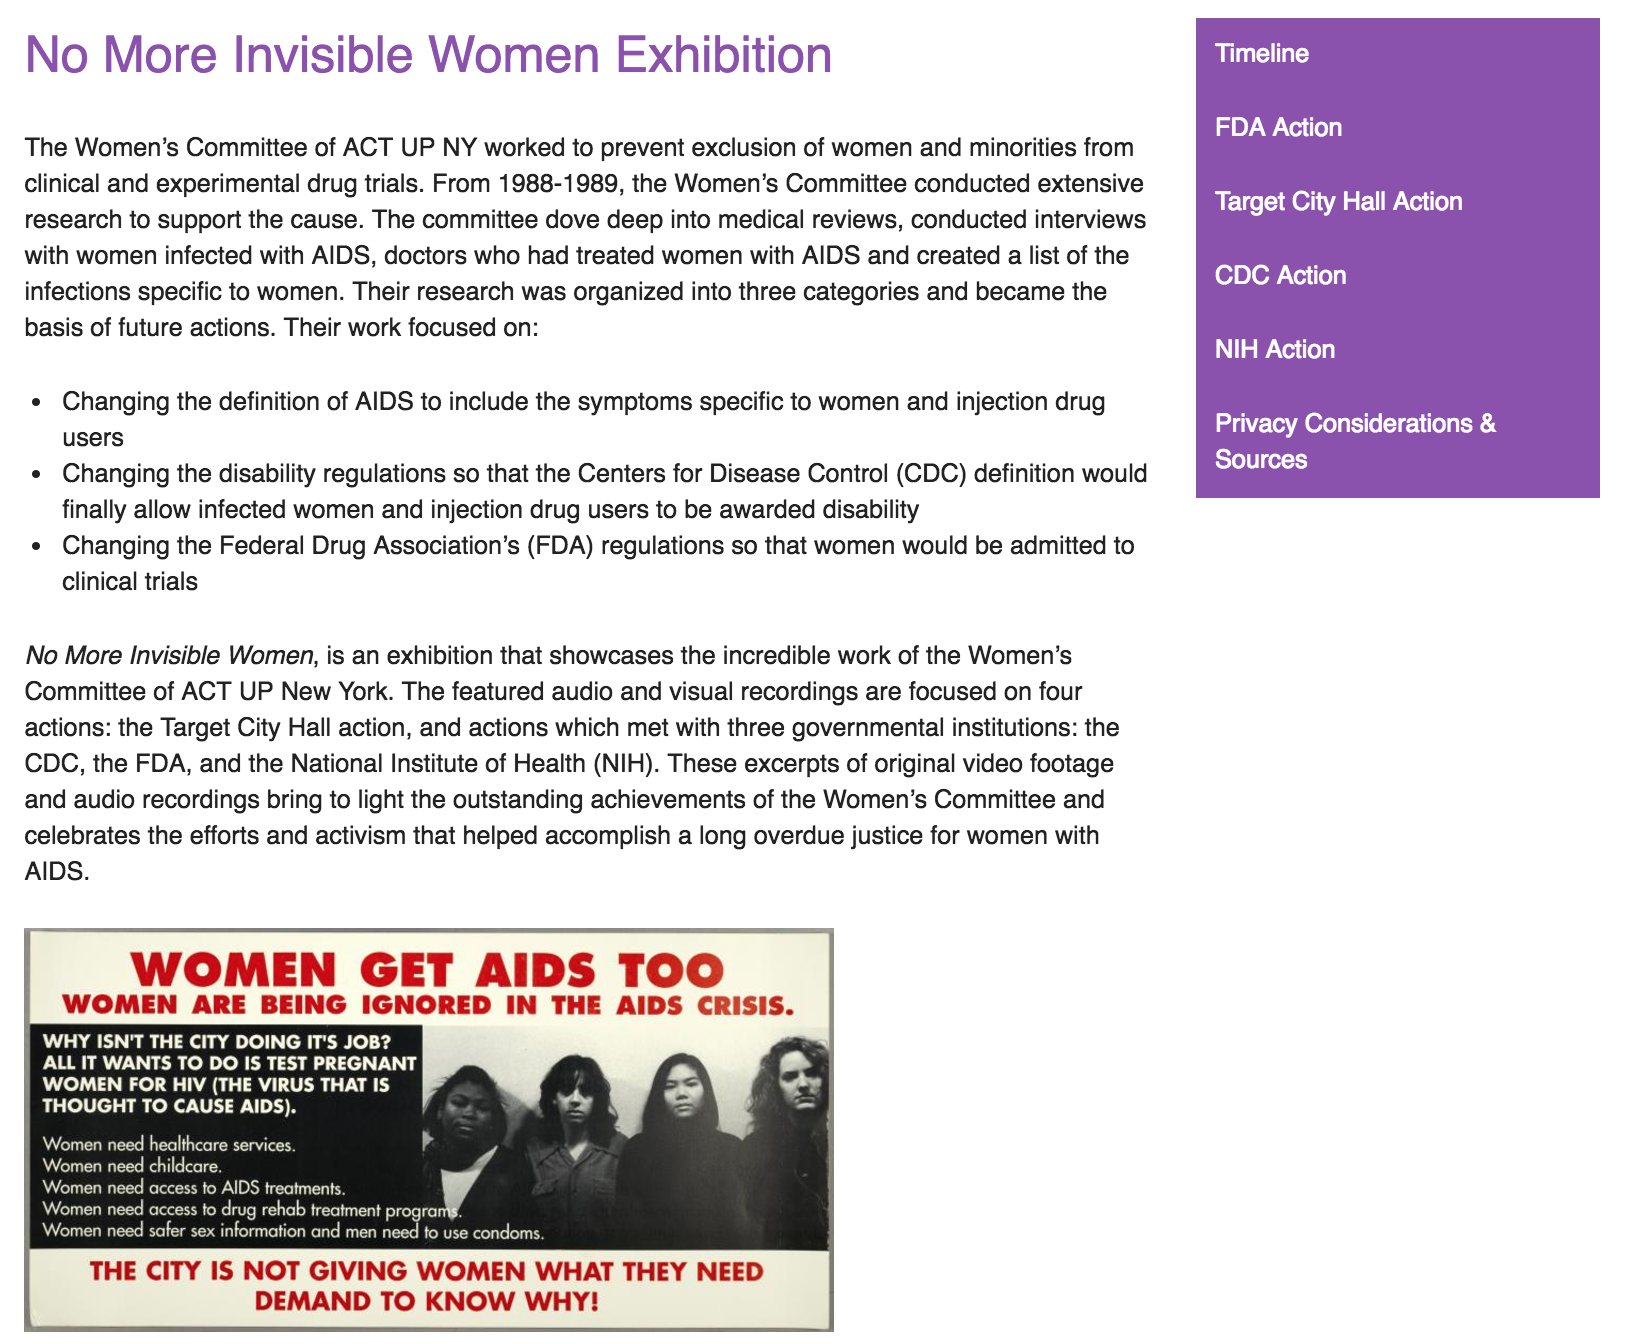 Screenshot of the exhibition's home page.